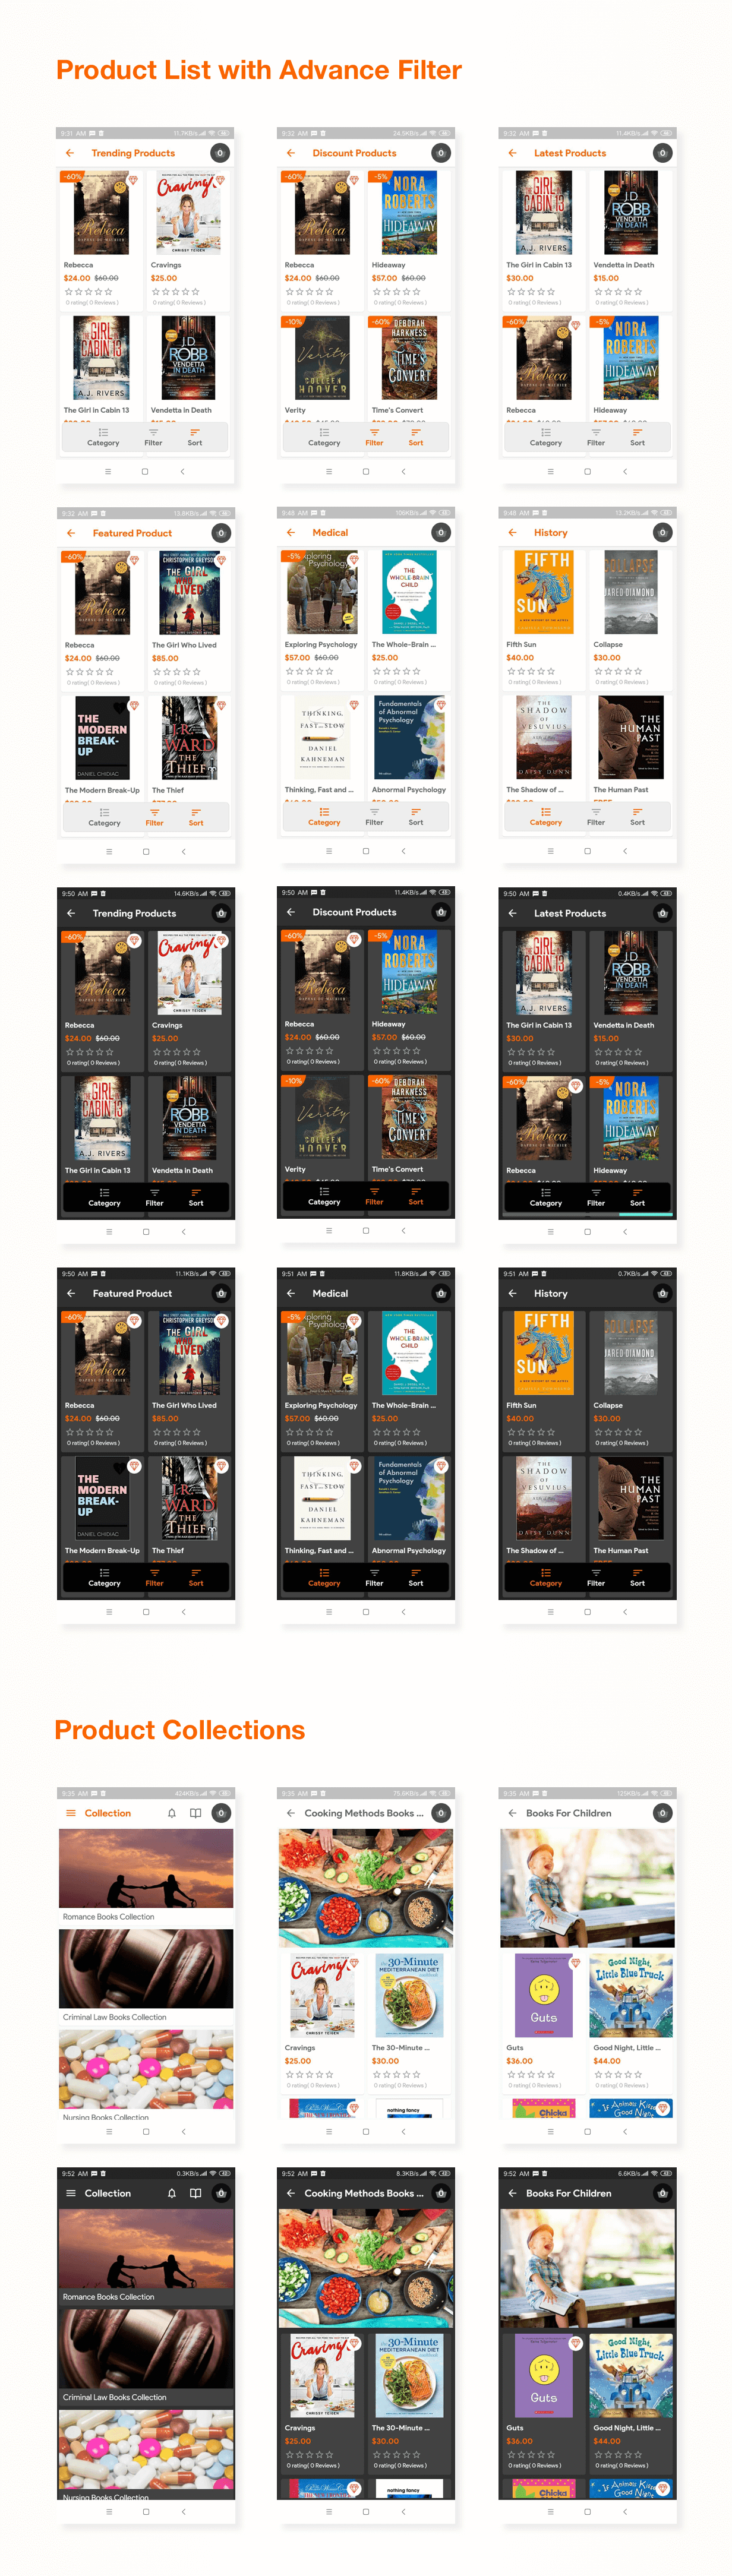 Digital Download Products Store For eBook, Video, Photo (Using Flutter For iOS and Android) 1.4 - 7